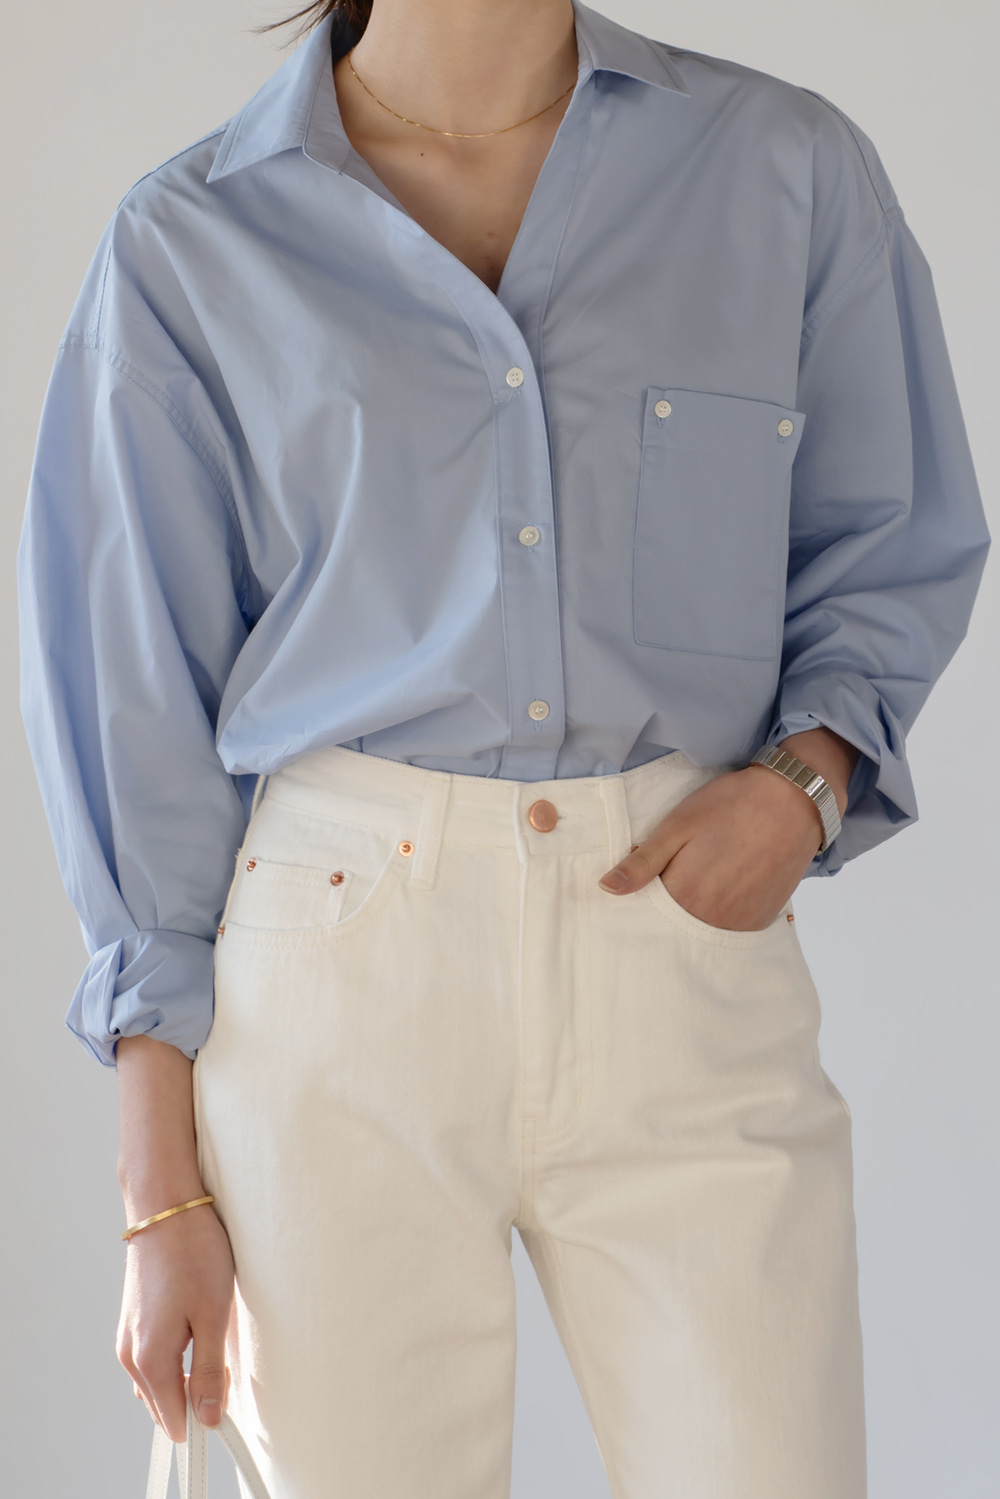 9776_Standard Pocket Shirt